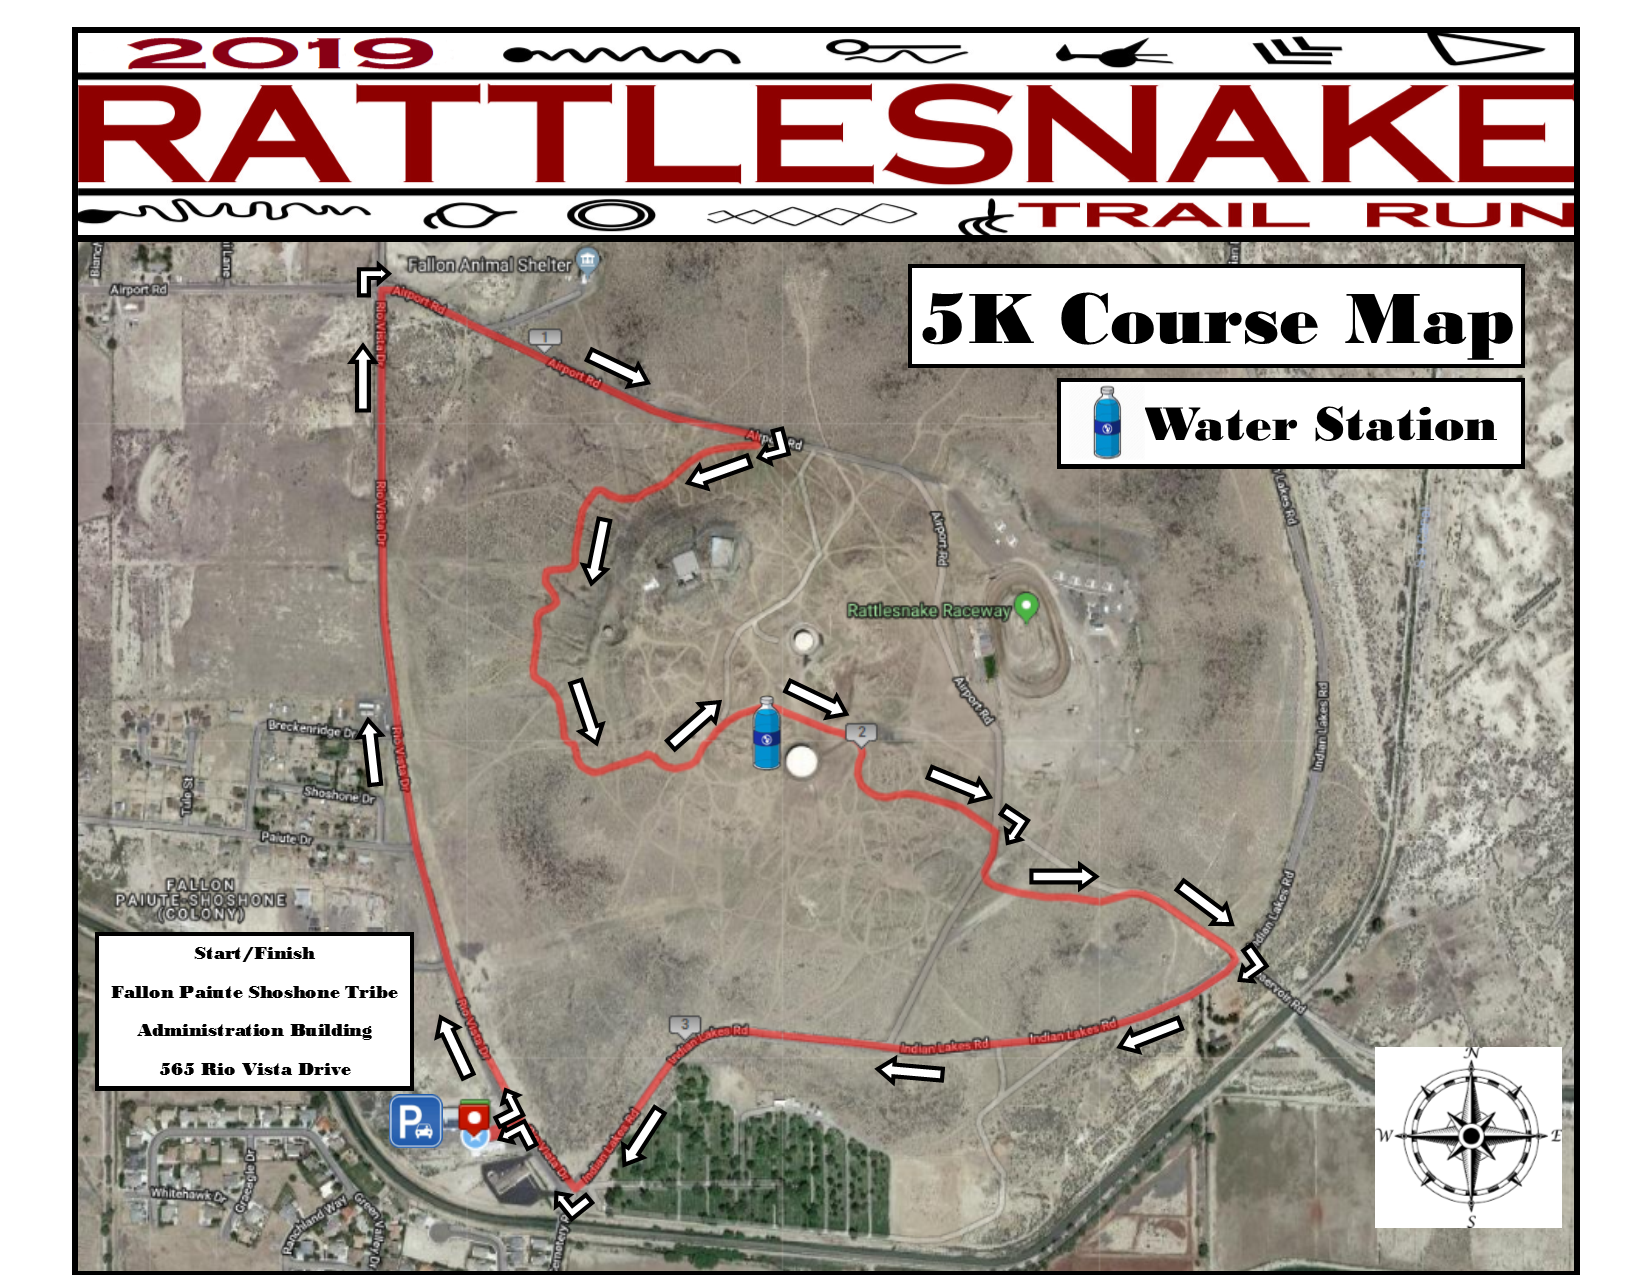 Rattlesnake Trail Run (2019) - 5K Course Map